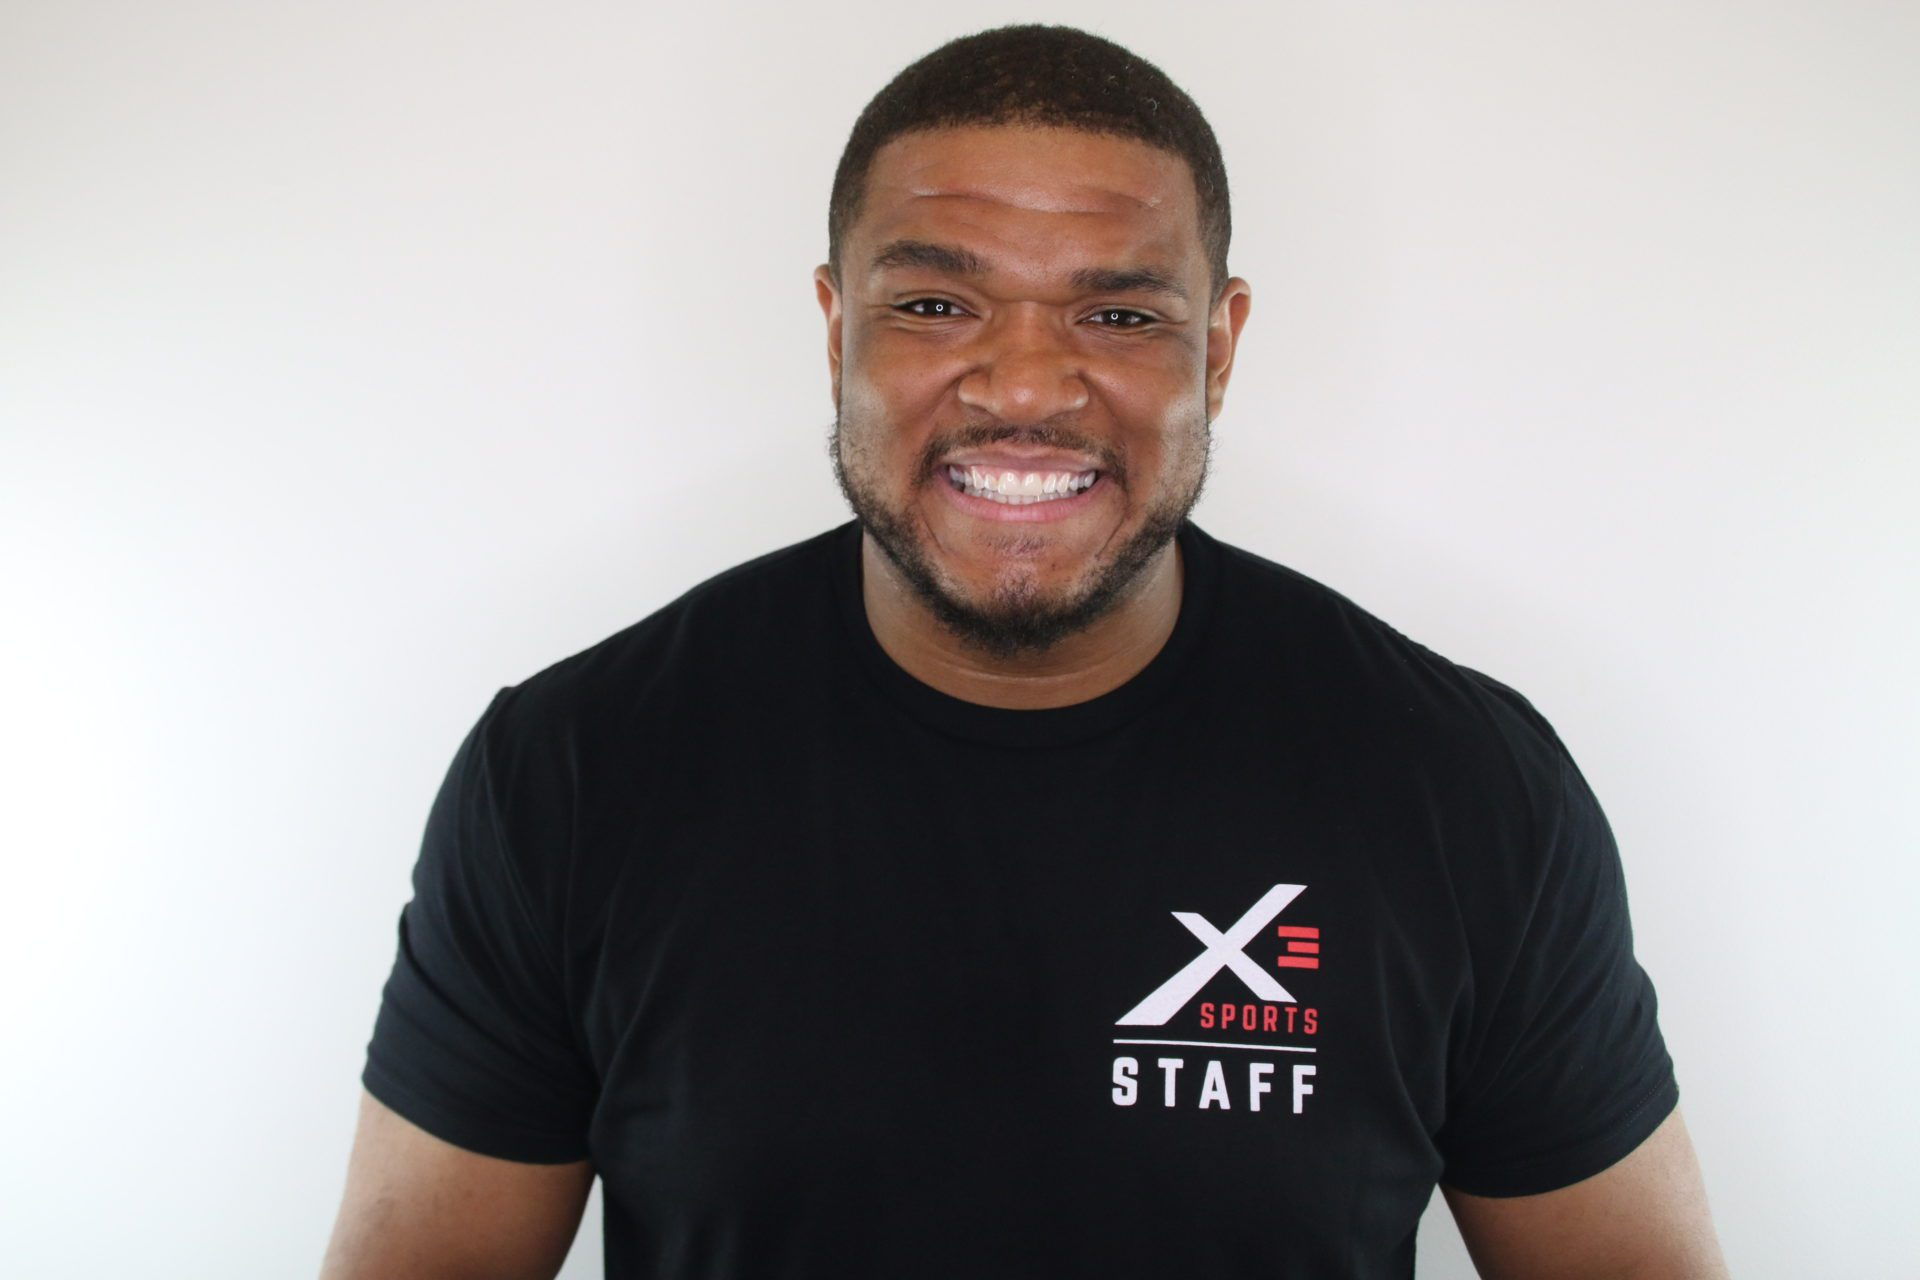 Jan-Michael A. Coke | X3 Sports Employee | X3 Sports